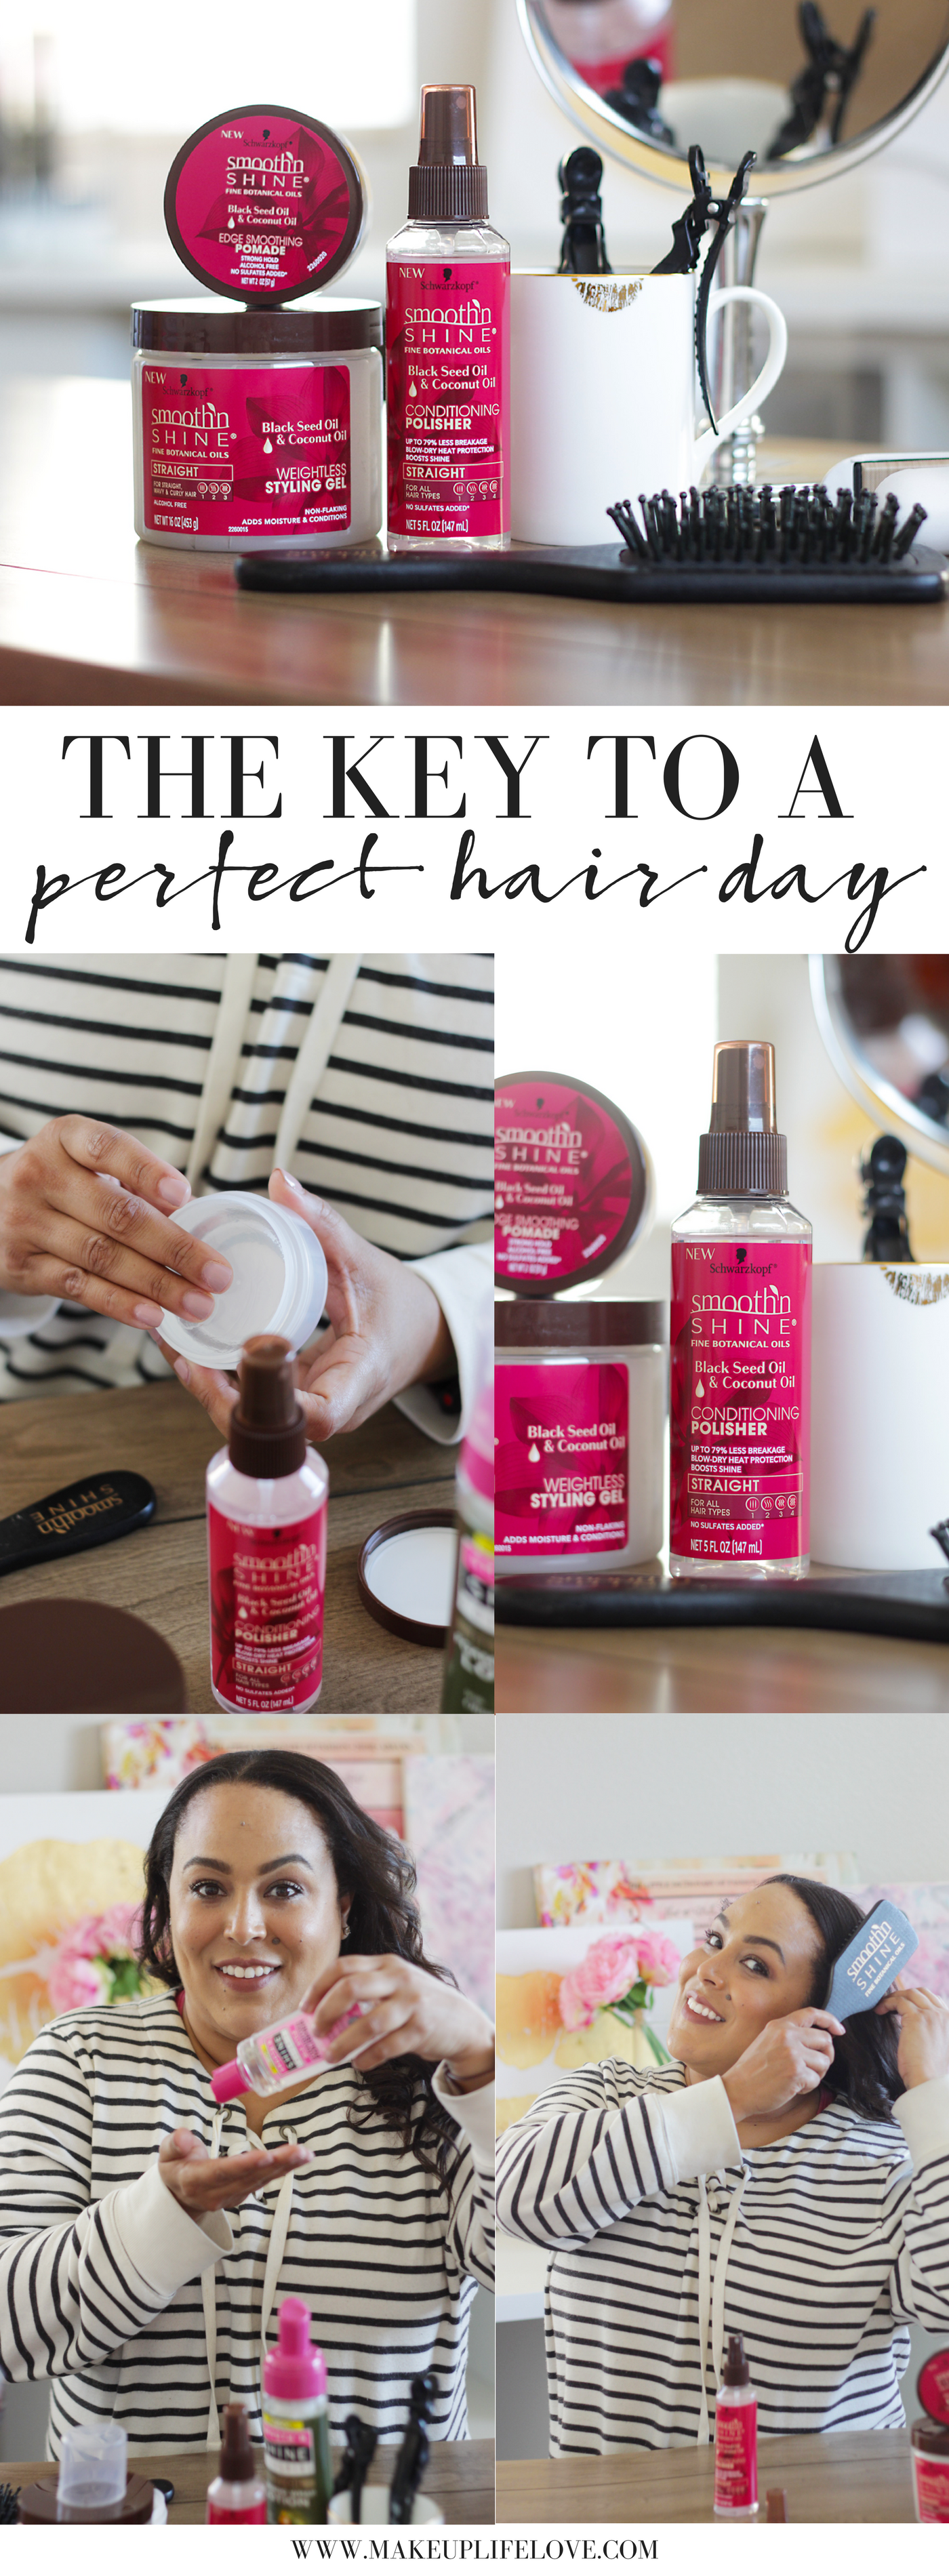 If we are being honest, most of us often wish for those perfect hair days, right? But what if I told you that you CAN have that perfect hair day with SUPER affordable products? Curious what it is?